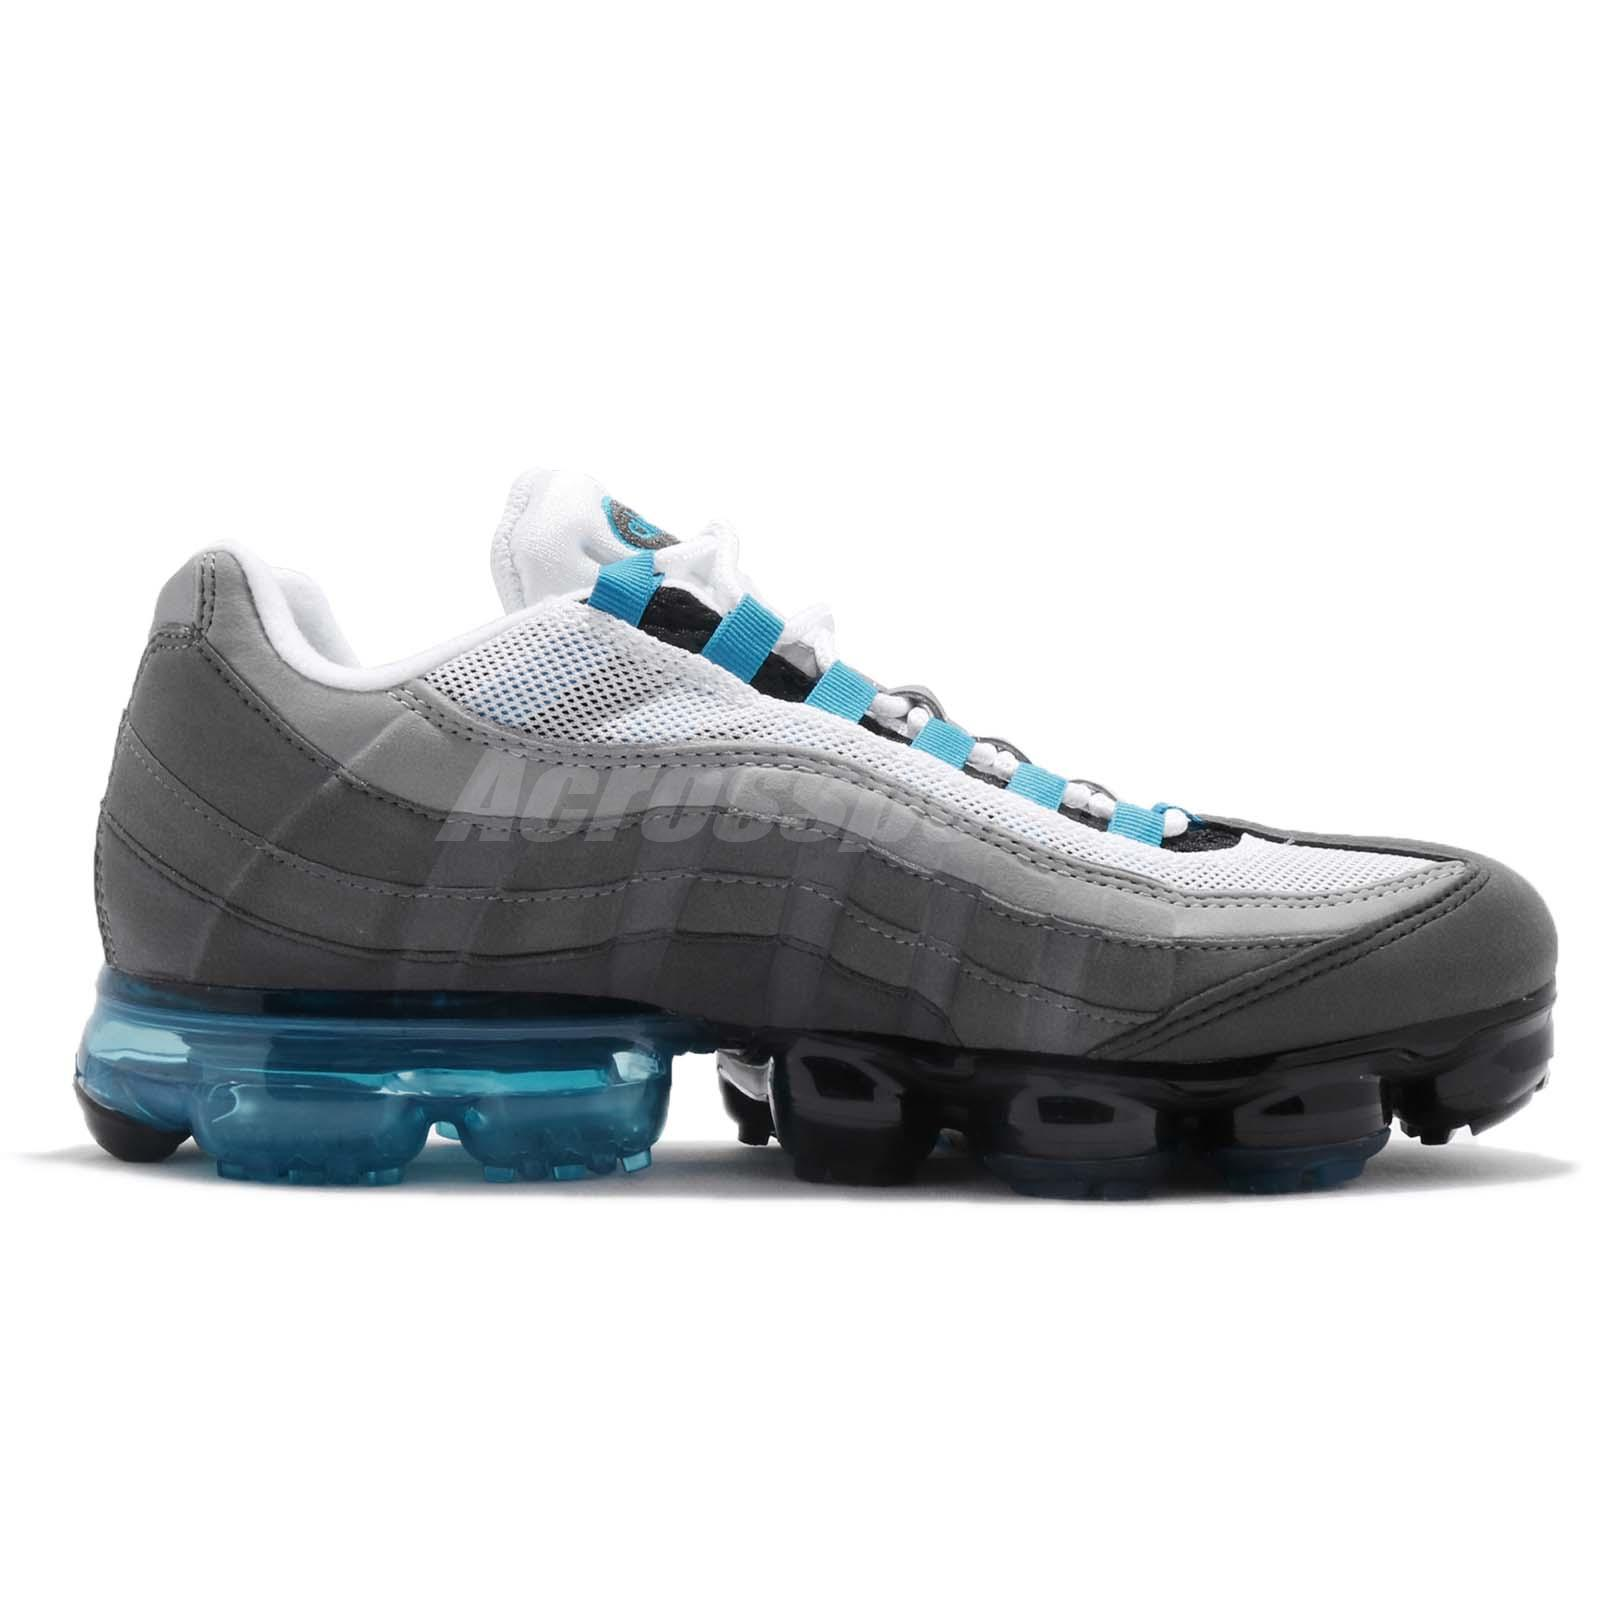 9d896d2cfd0 Nike Air Vapormax 95 Neo Turquoise Blue Men Running Shoes Sneakers ...